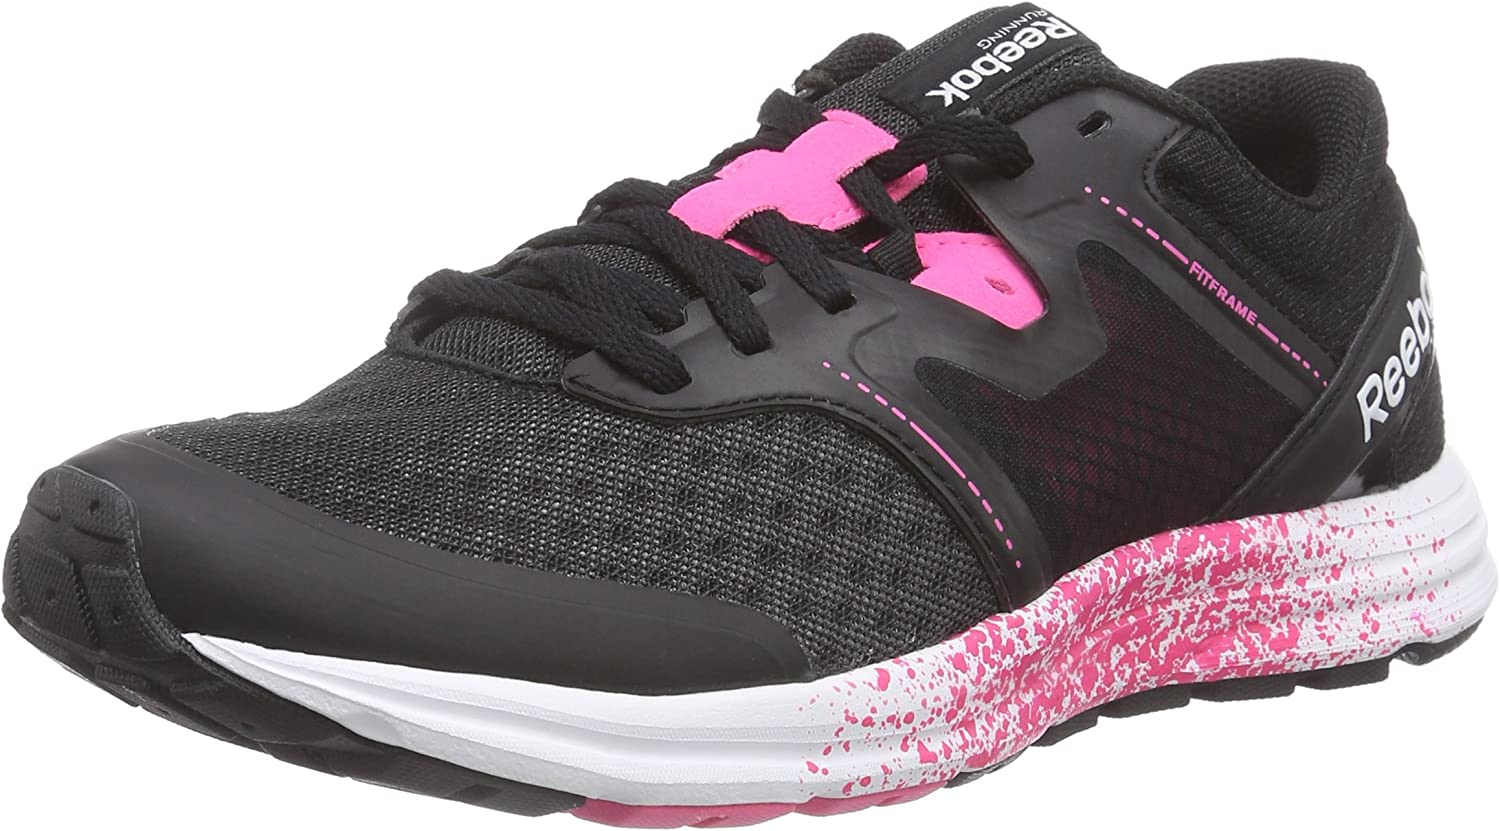 Reebok Exhilarun Womens Running Sneakers